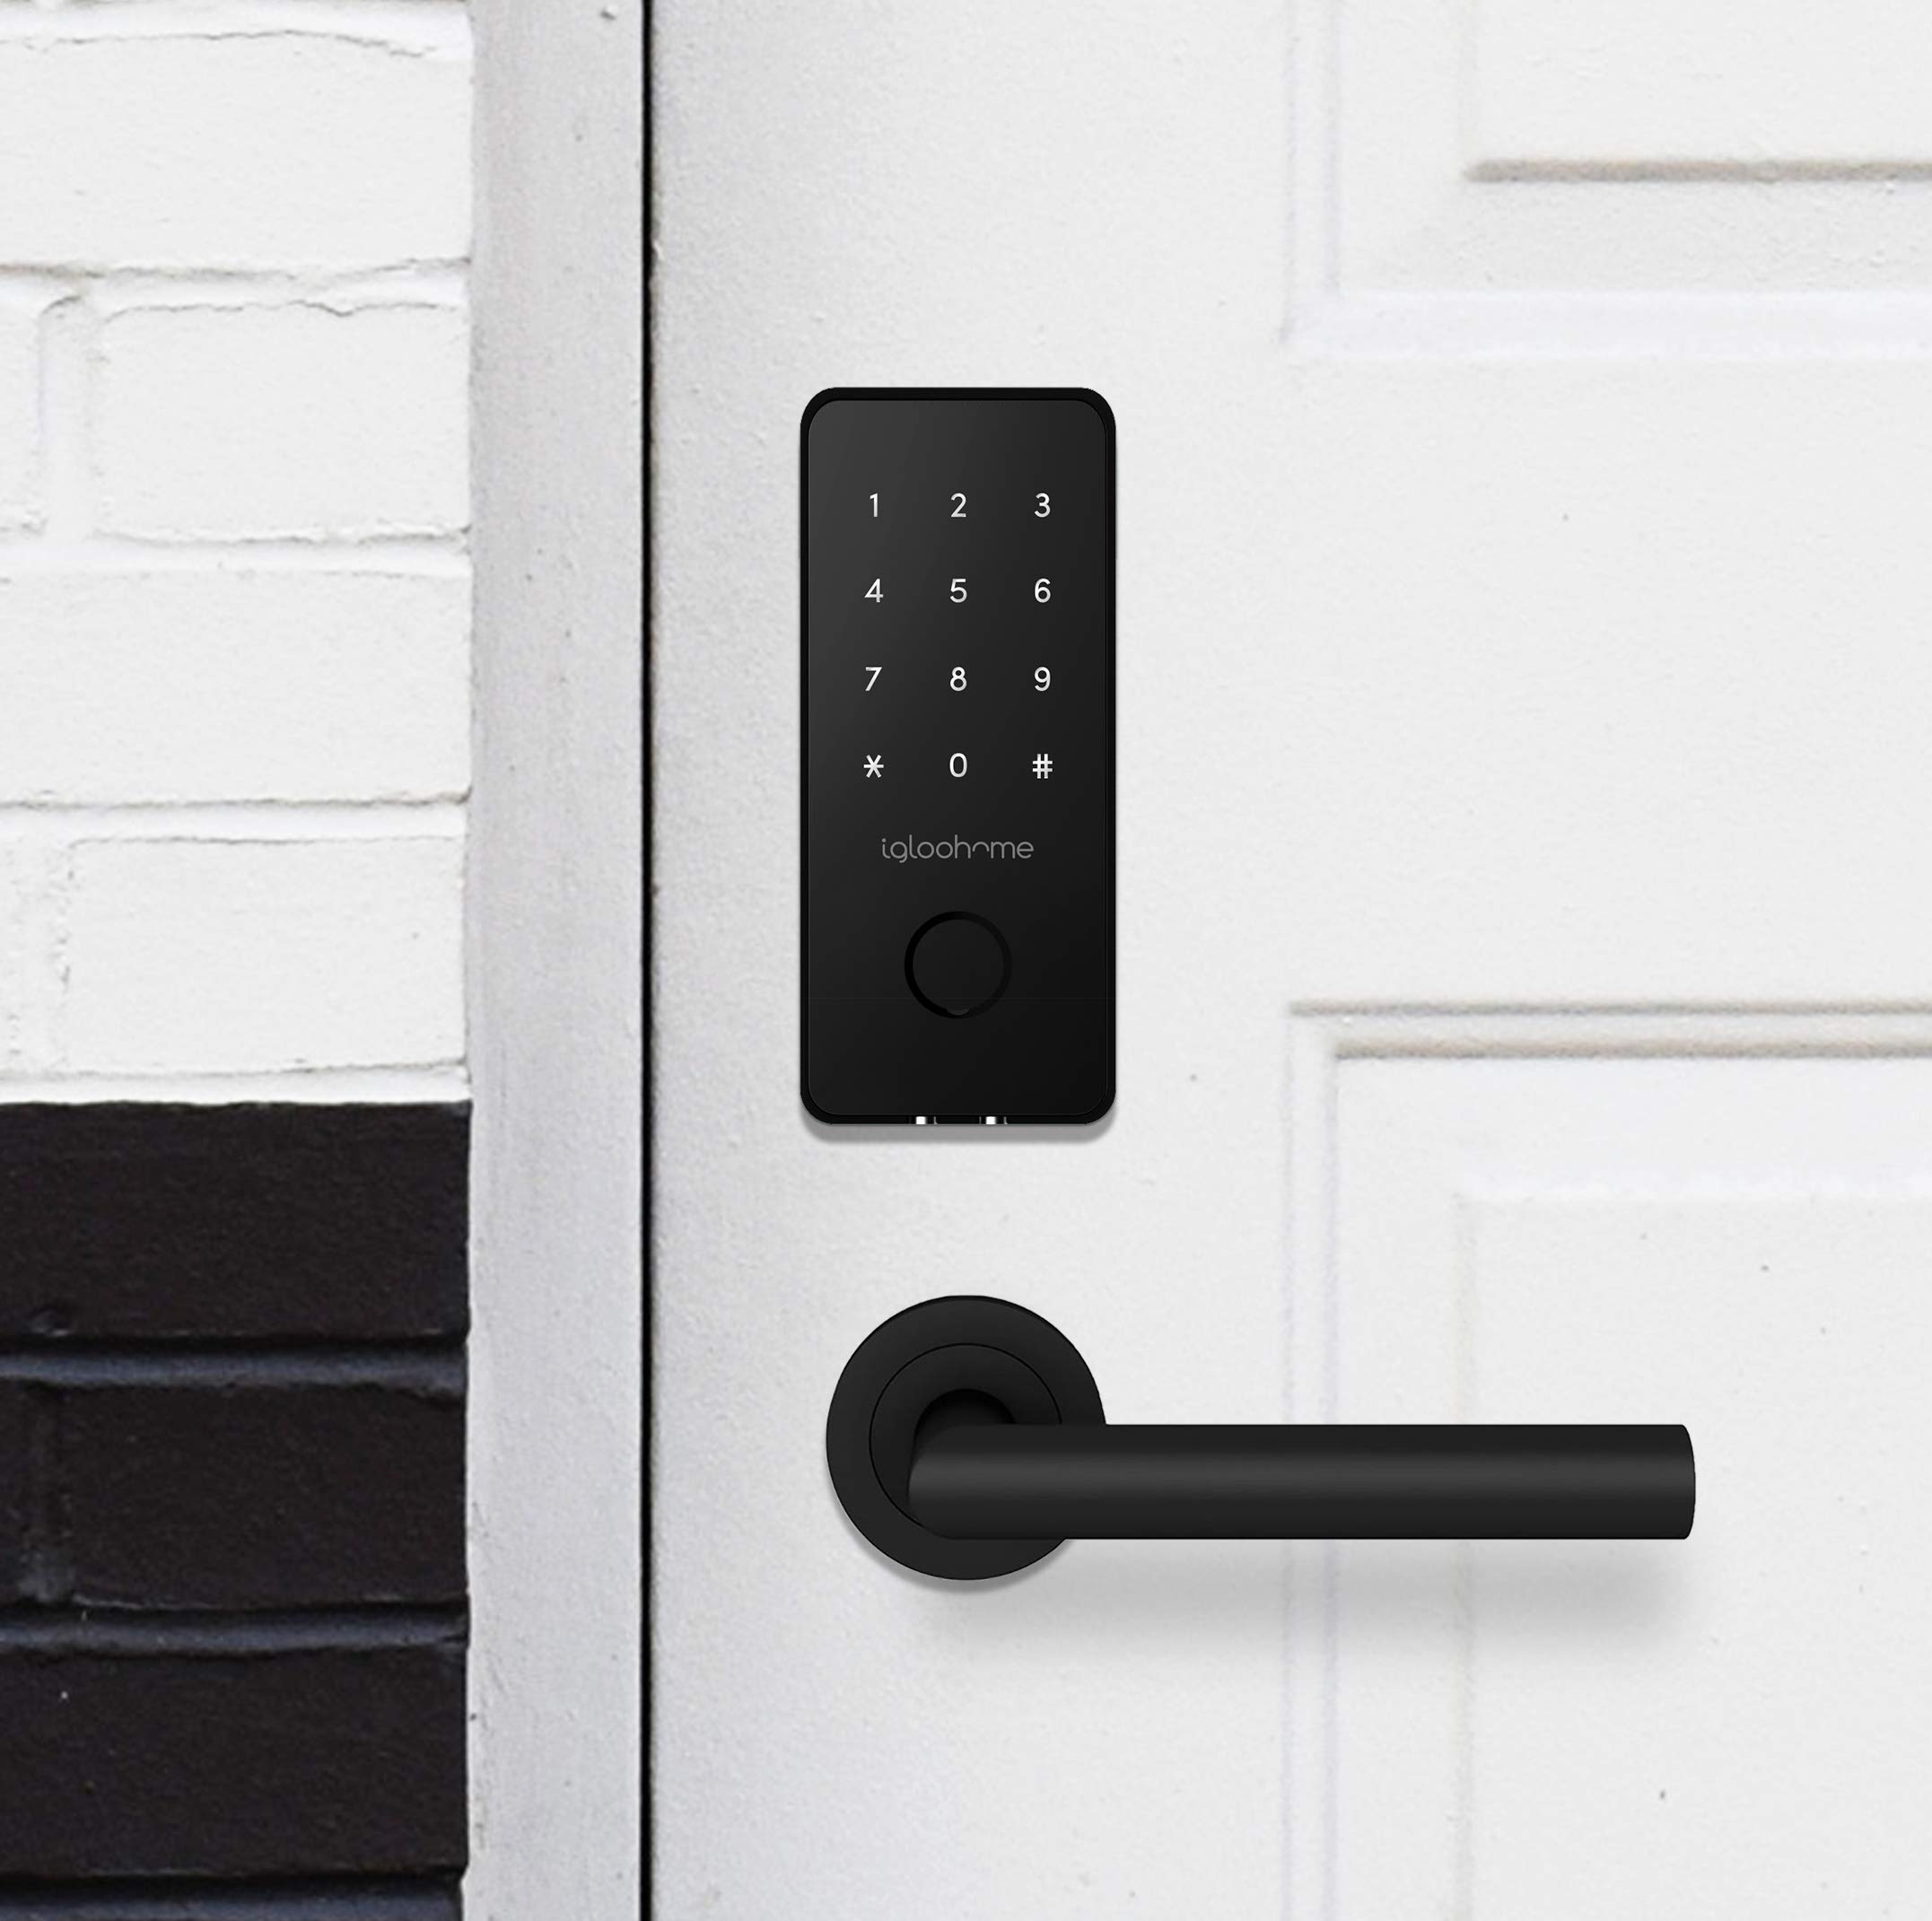 Igloohome Smart Electronic Deadbolt 2S, Grant & Control Remote Access with Pin Code - Touch Screen Keypad with Built-in Alarm - Bluetooth Enabled Works Offline - Works with Your Smartphone by igloohome (Image #6)